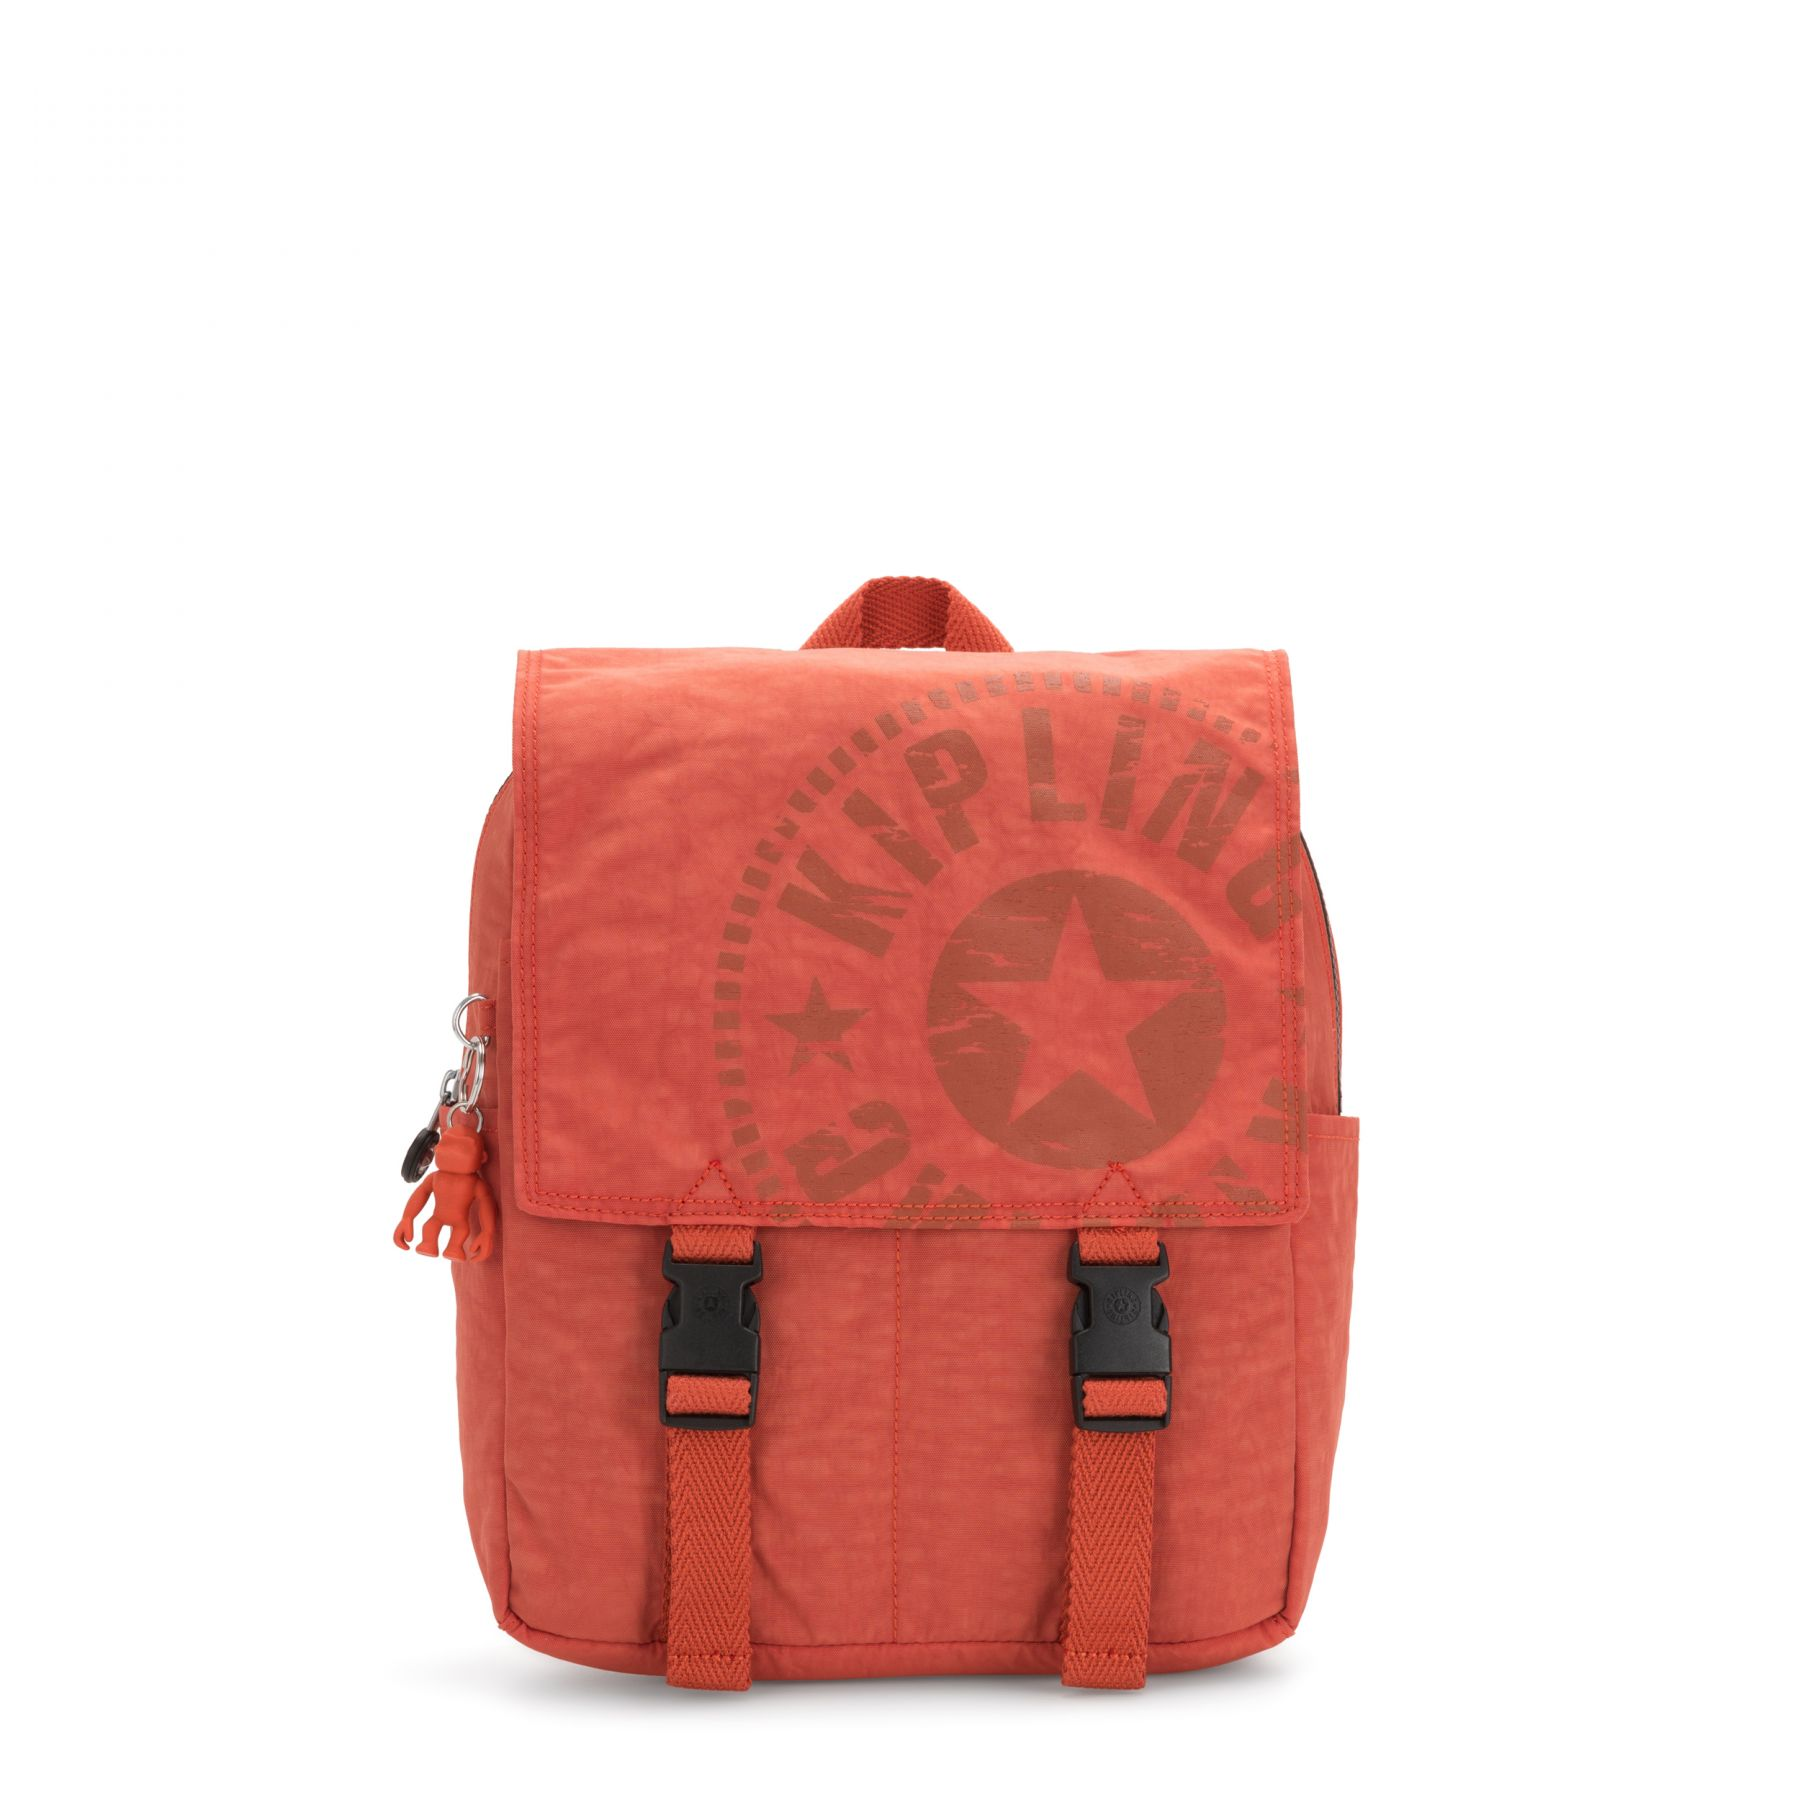 LEONIE S Online Exclusives by Kipling - Front view